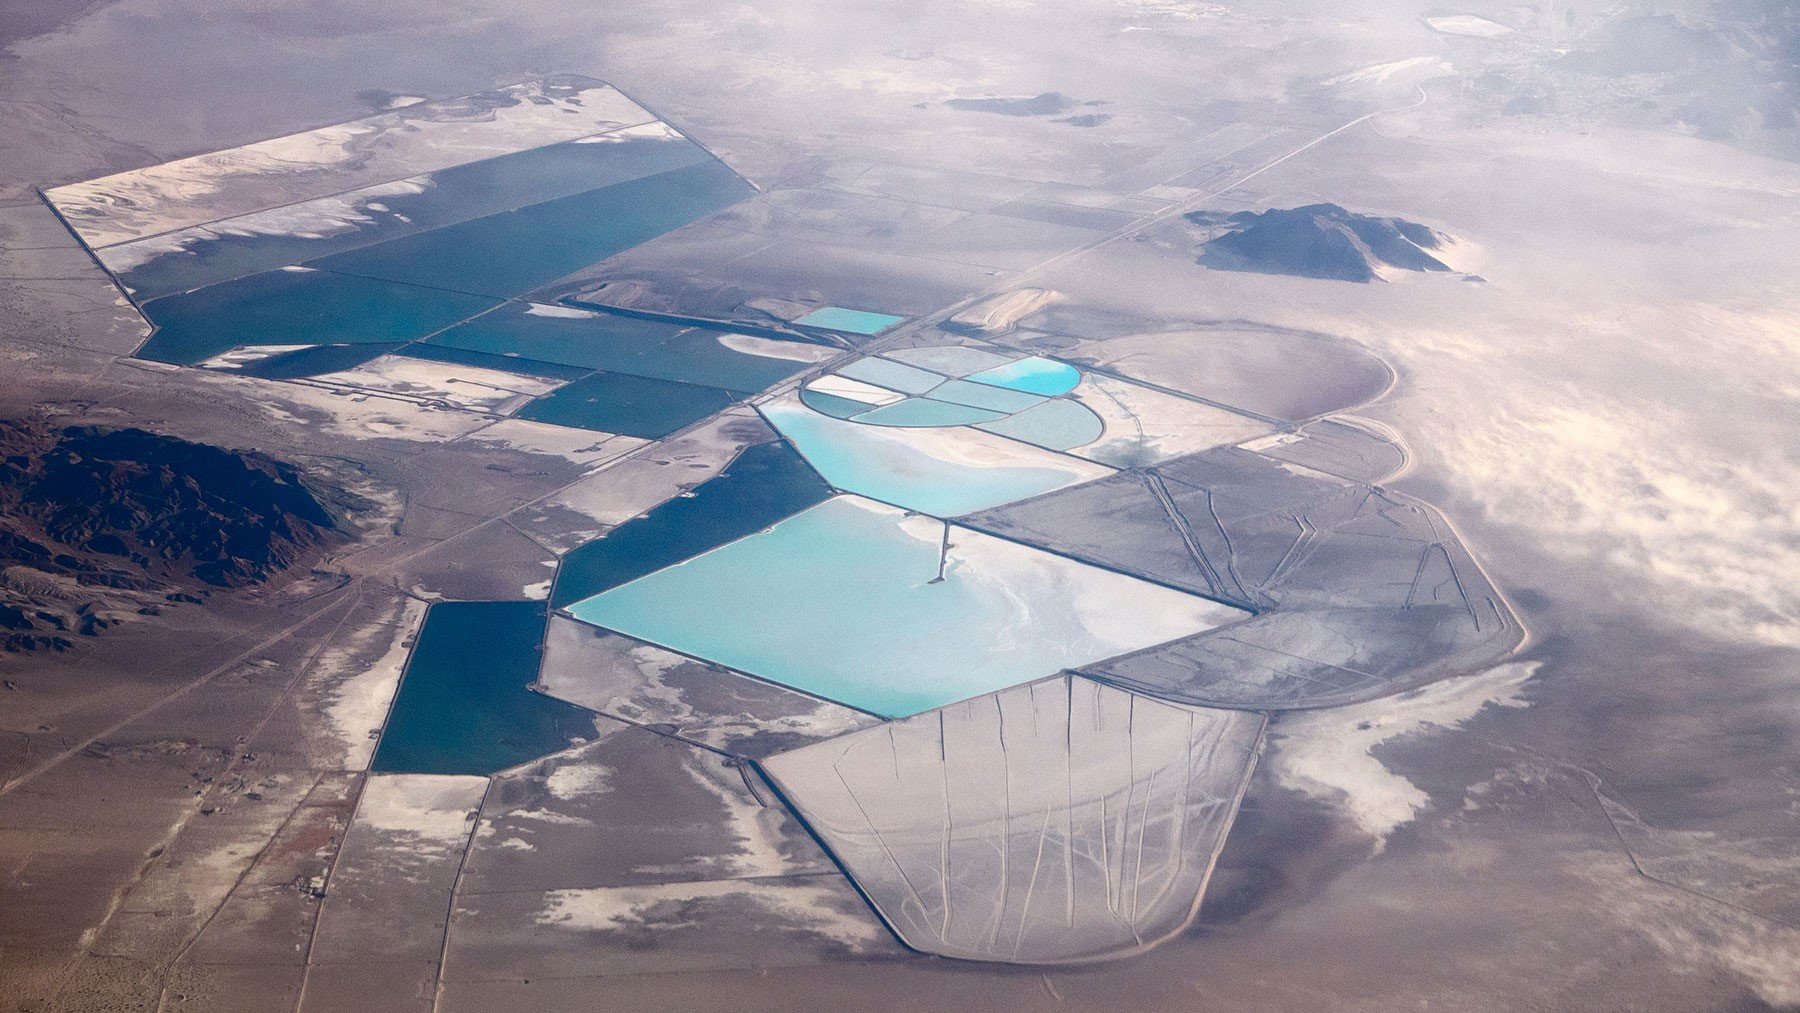 Exhibit 4: An aerial view of a lithium extraction operation in Nevada